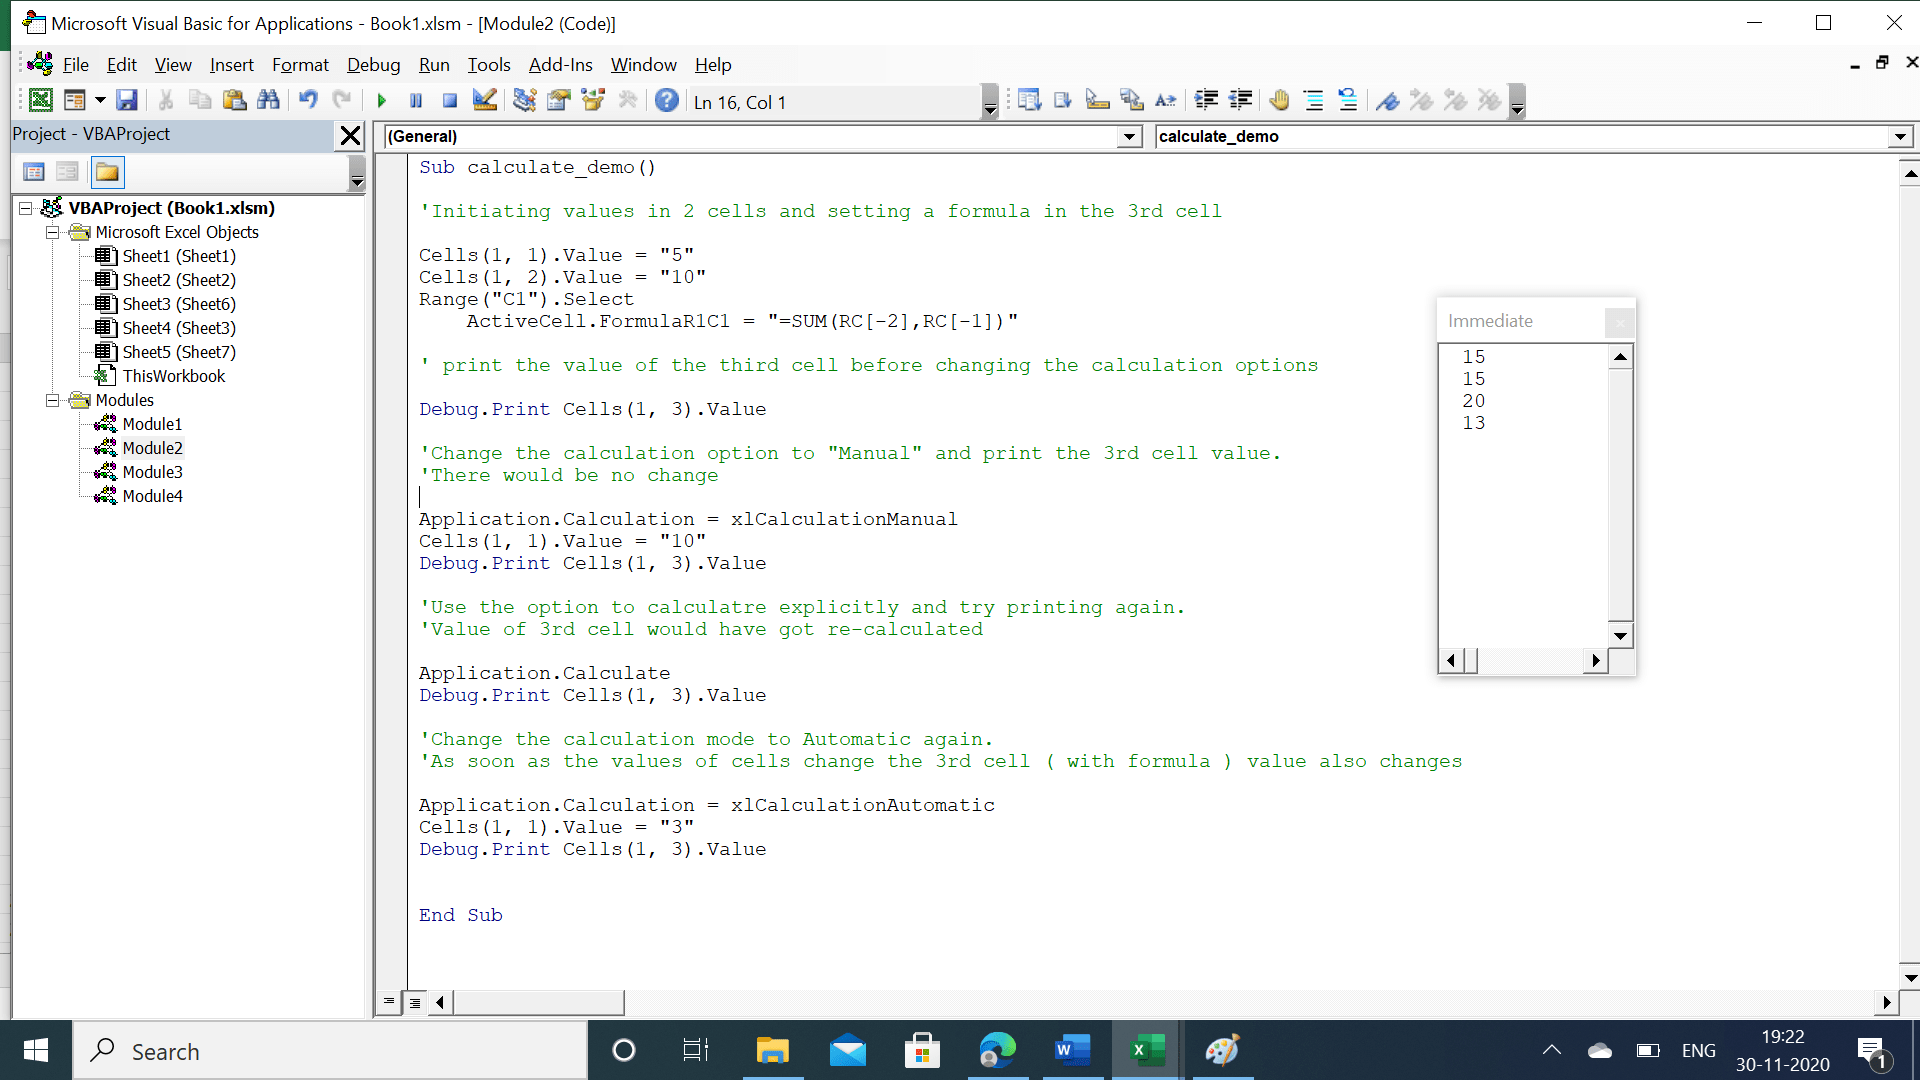 Immediate window showing differences in calculation